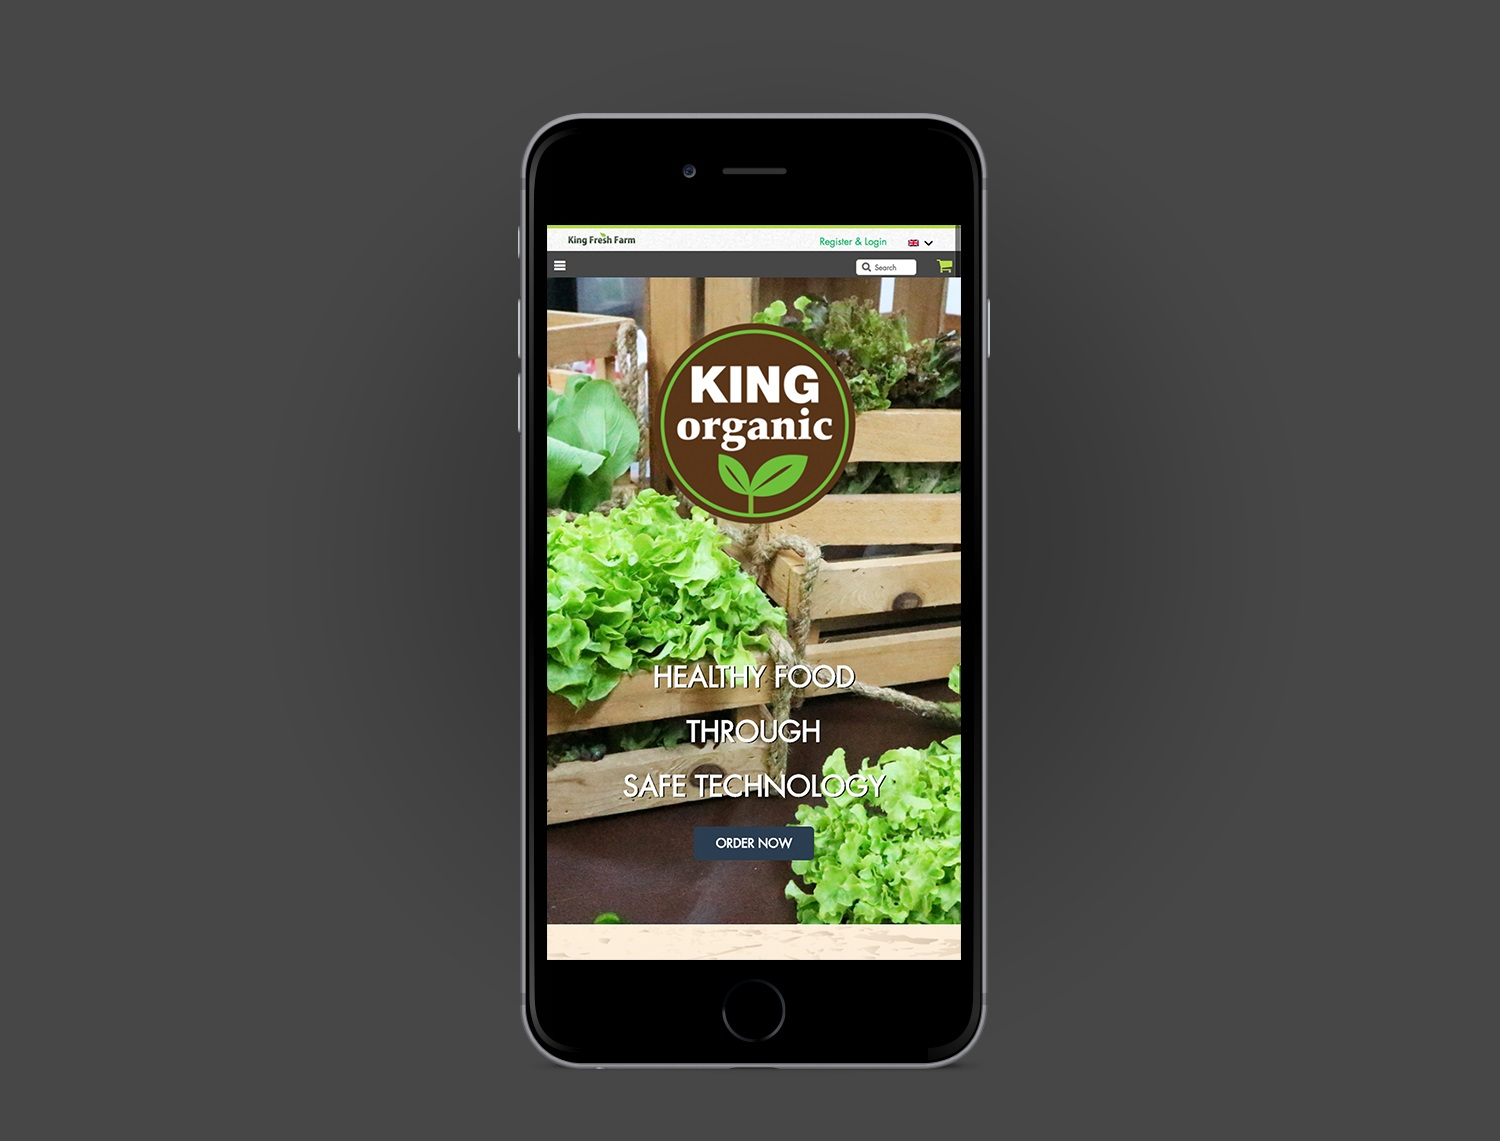 king-fresh-farm-iphone